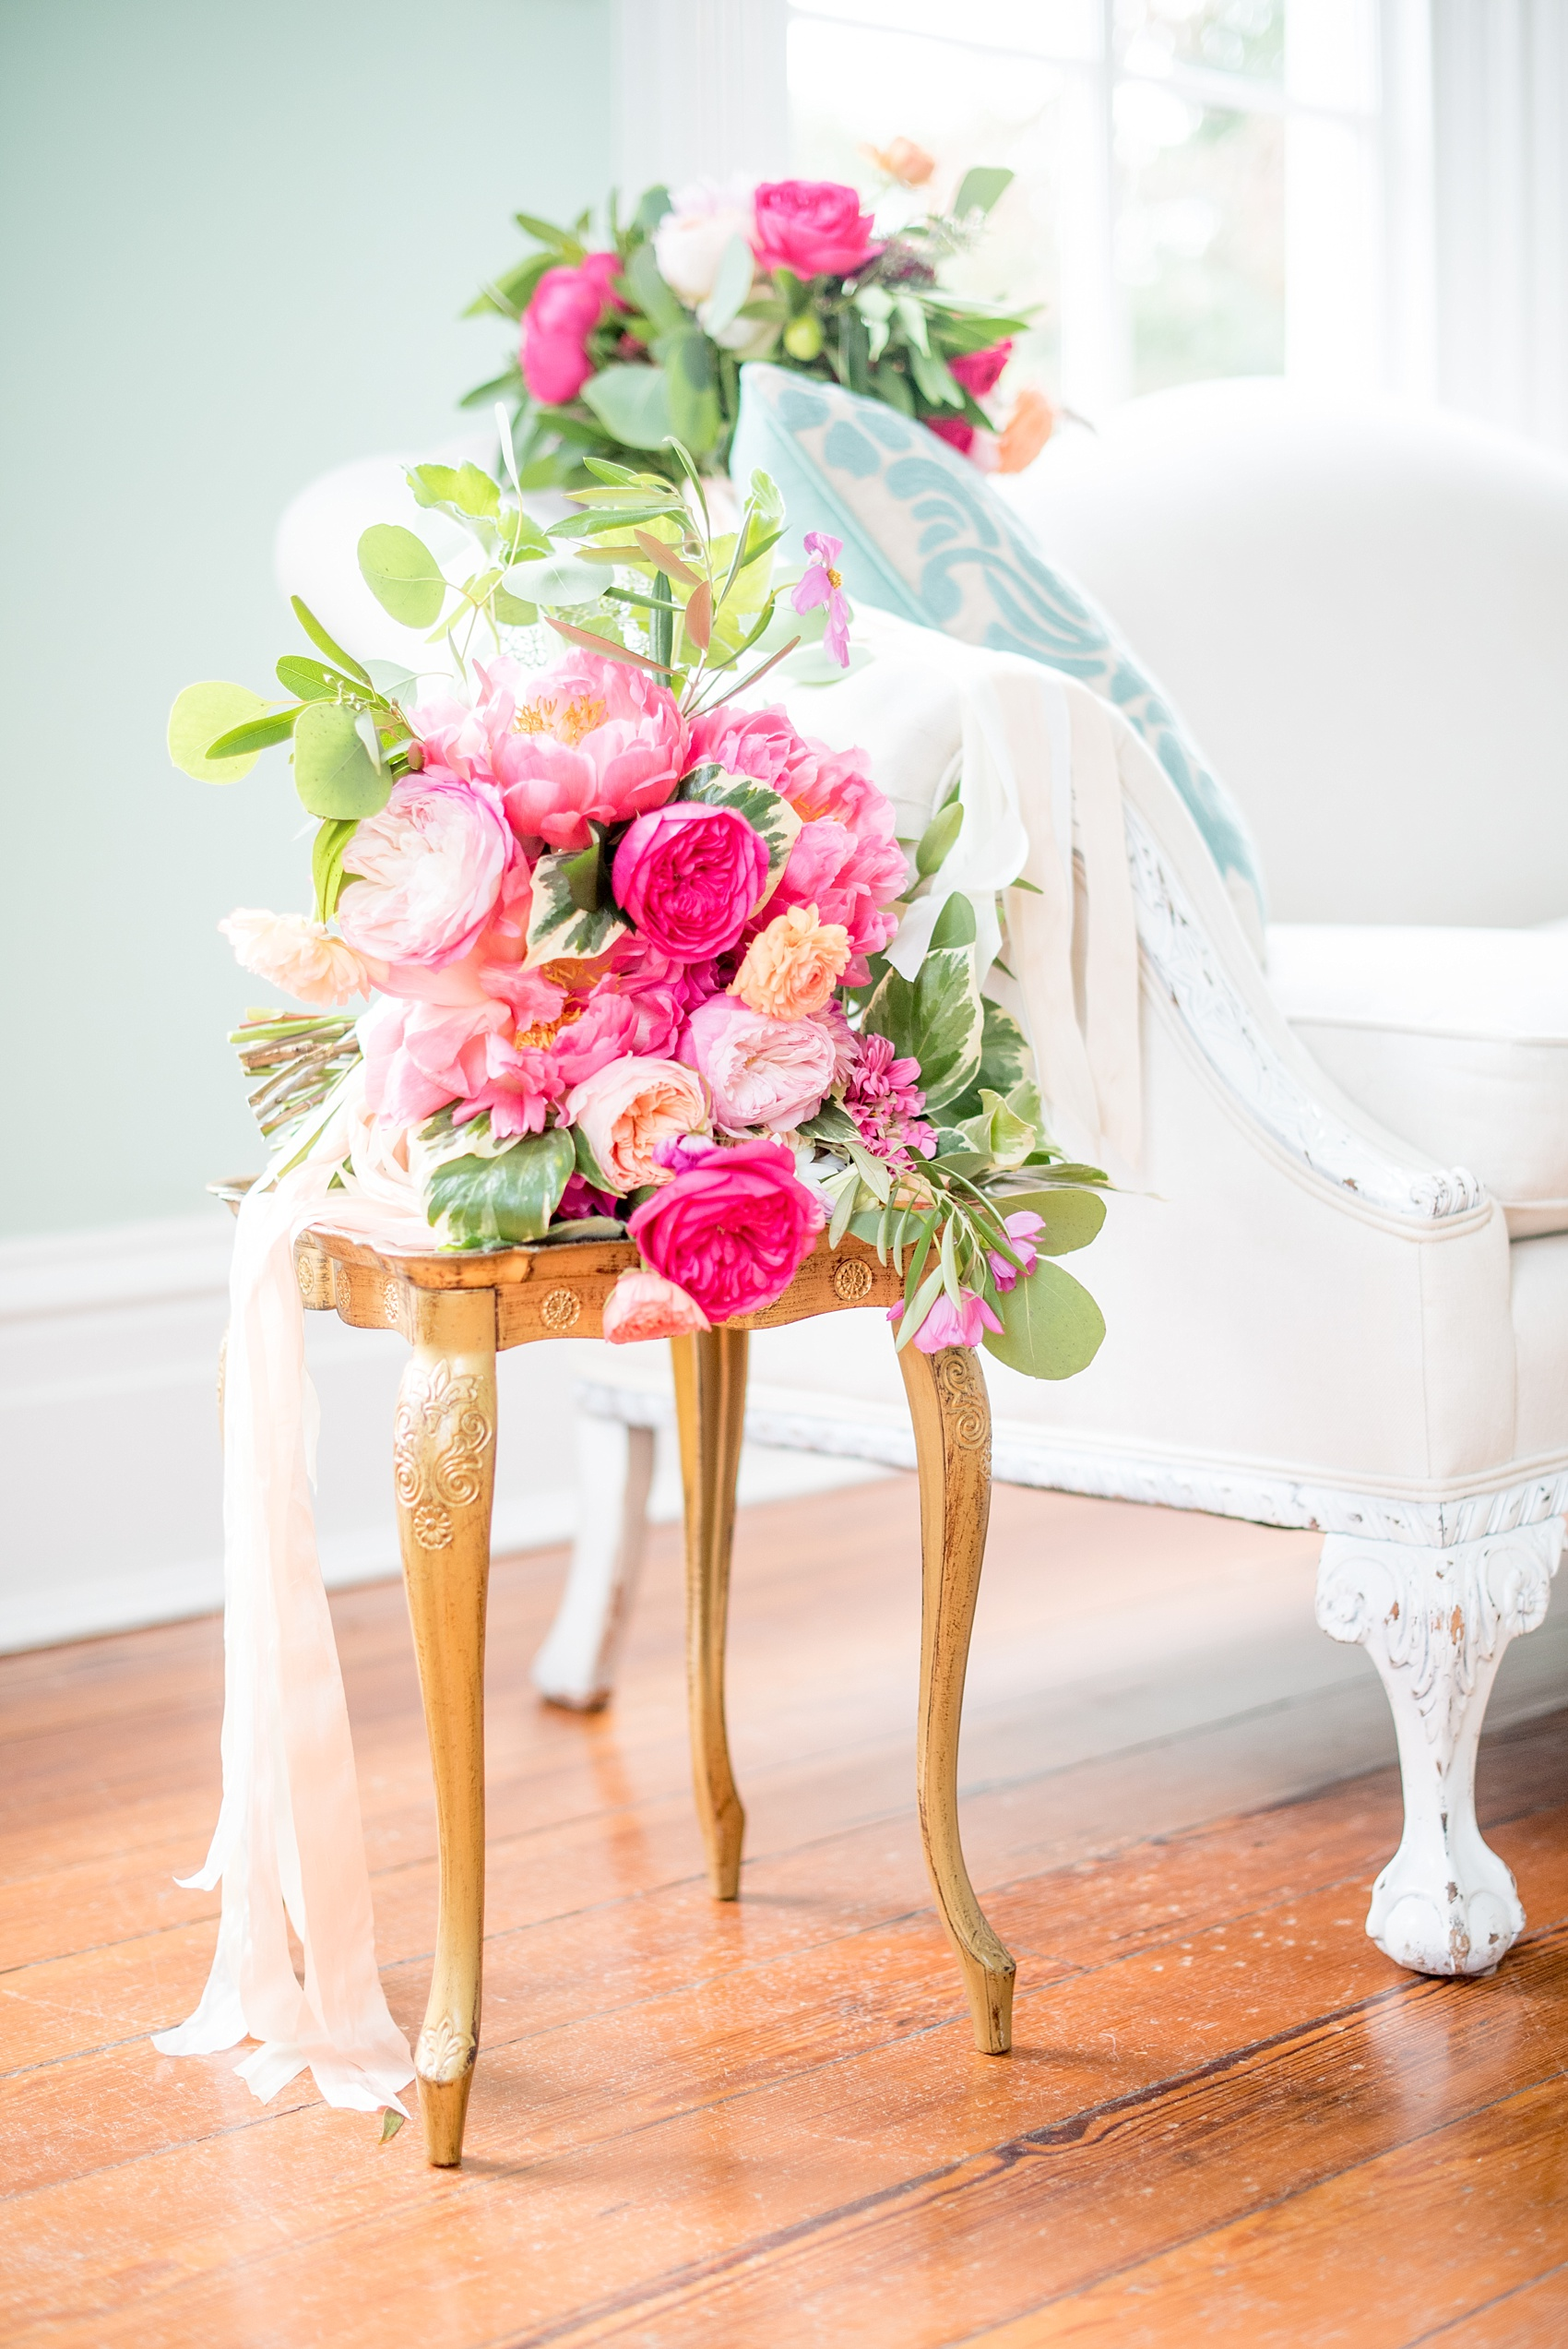 Mikkel Paige Photography wedding photos at The Merrimon-Wynne House in downtown Raleigh. Colorful pink, orange and green bouquets with peonies, eucalyptus and garden roses by Meristem Floral.